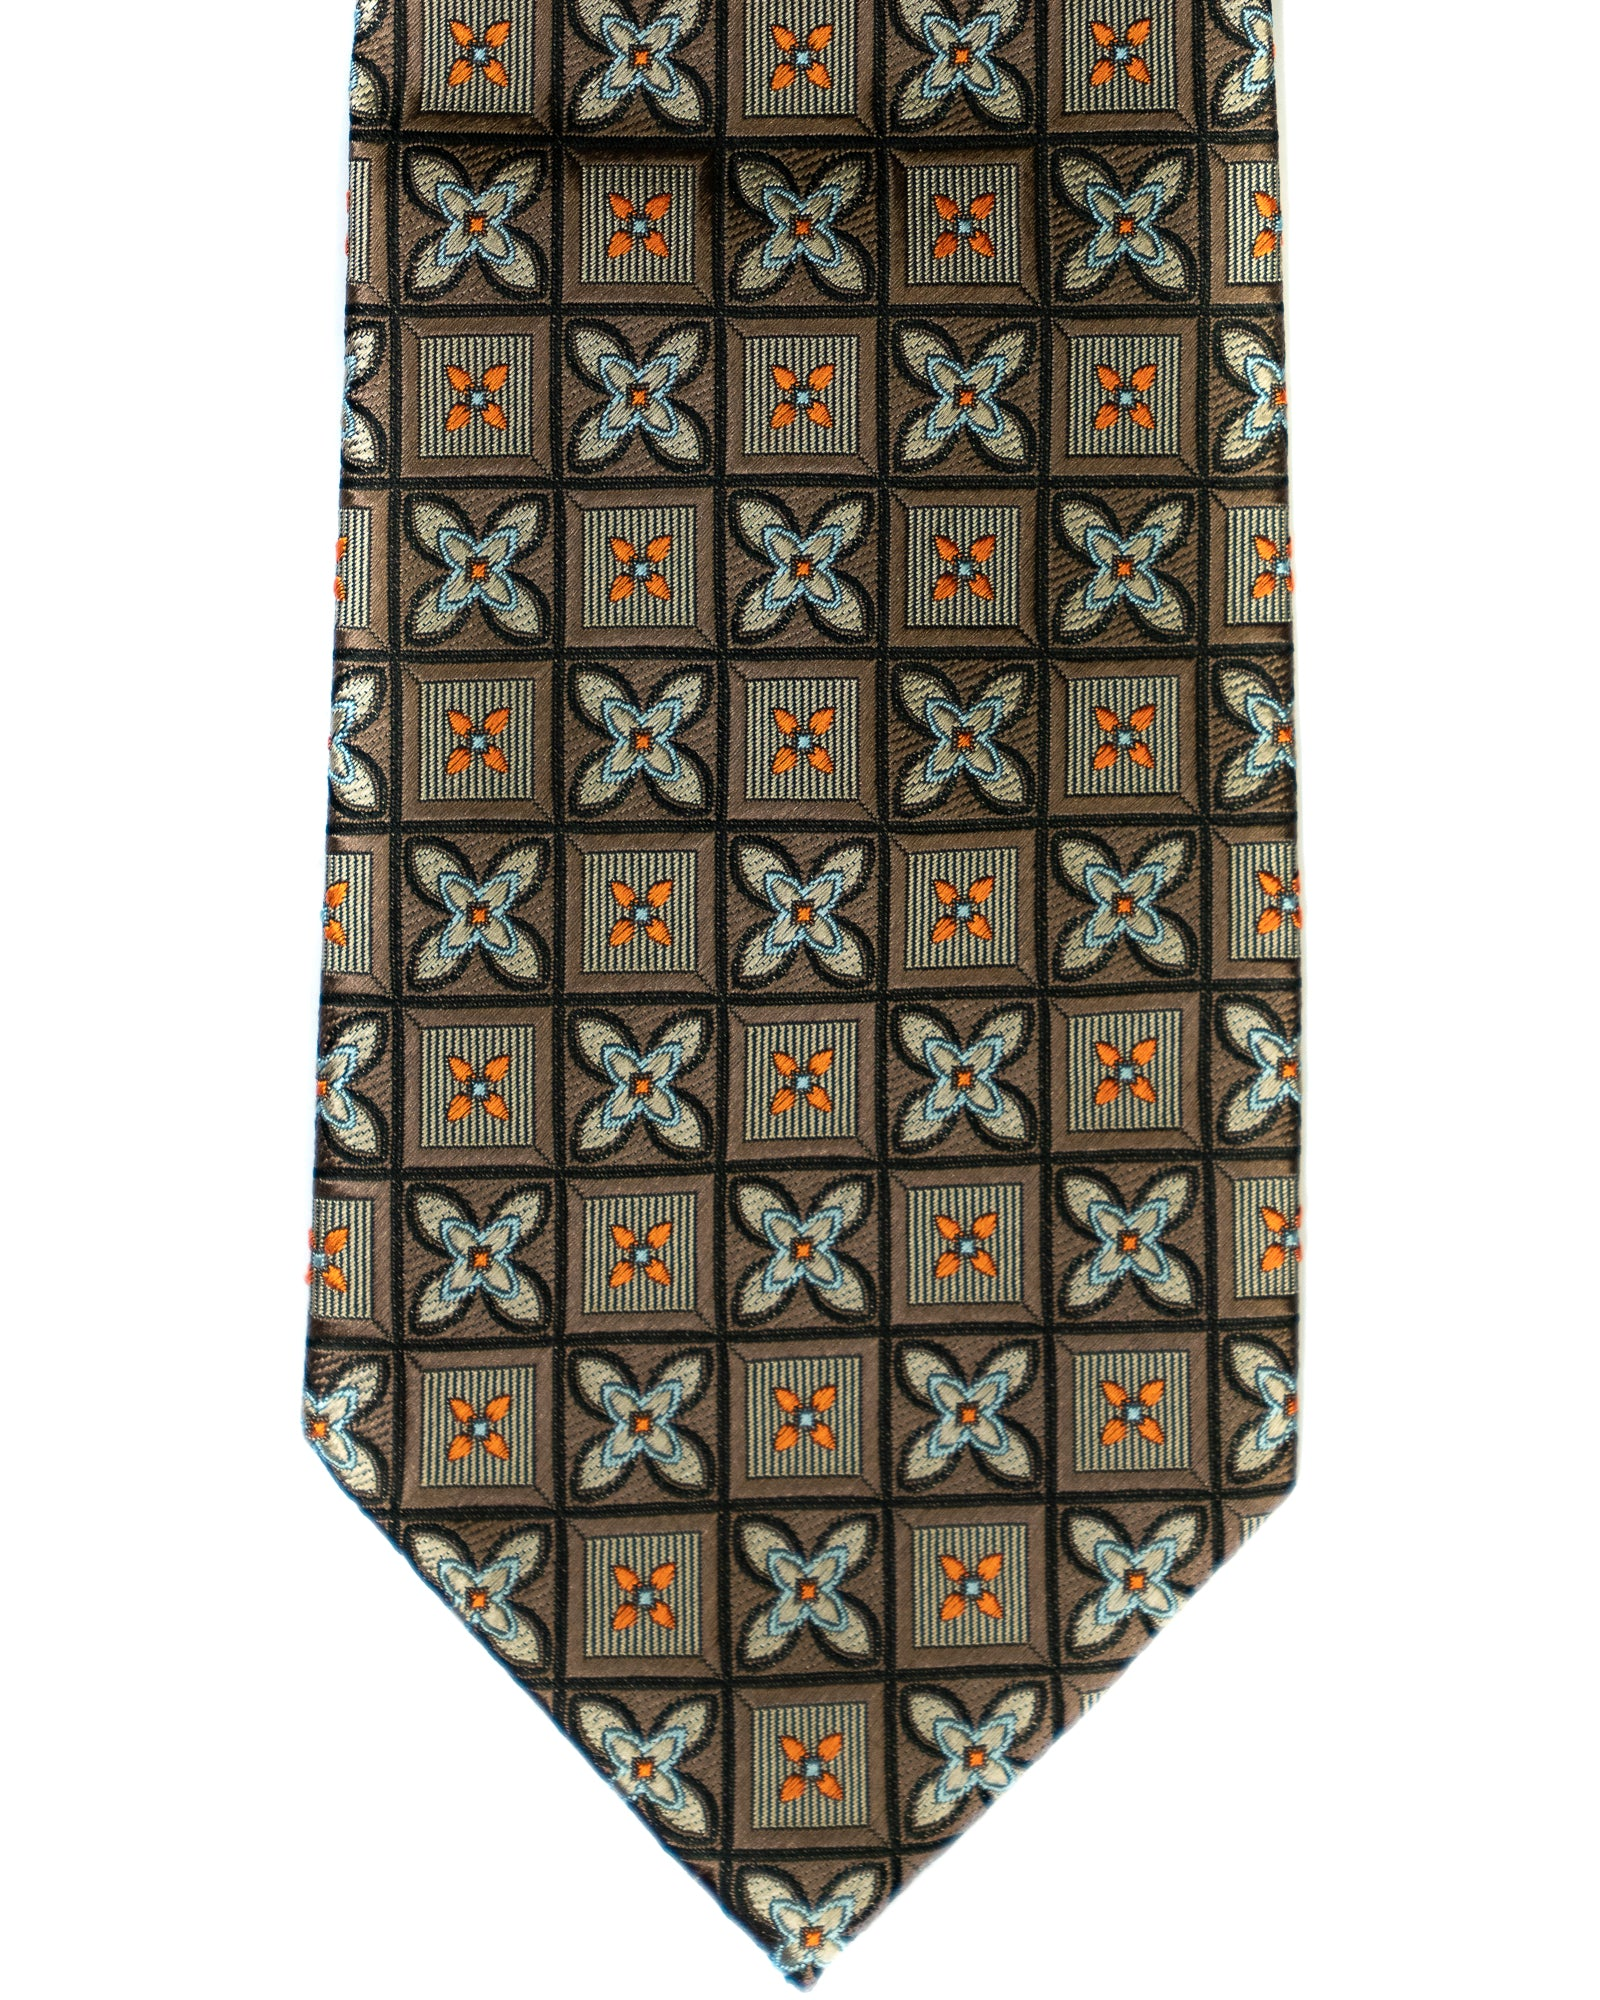 Silk Tie In Brown Foulard Squares Print - Rainwater's Men's Clothing and Tuxedo Rental